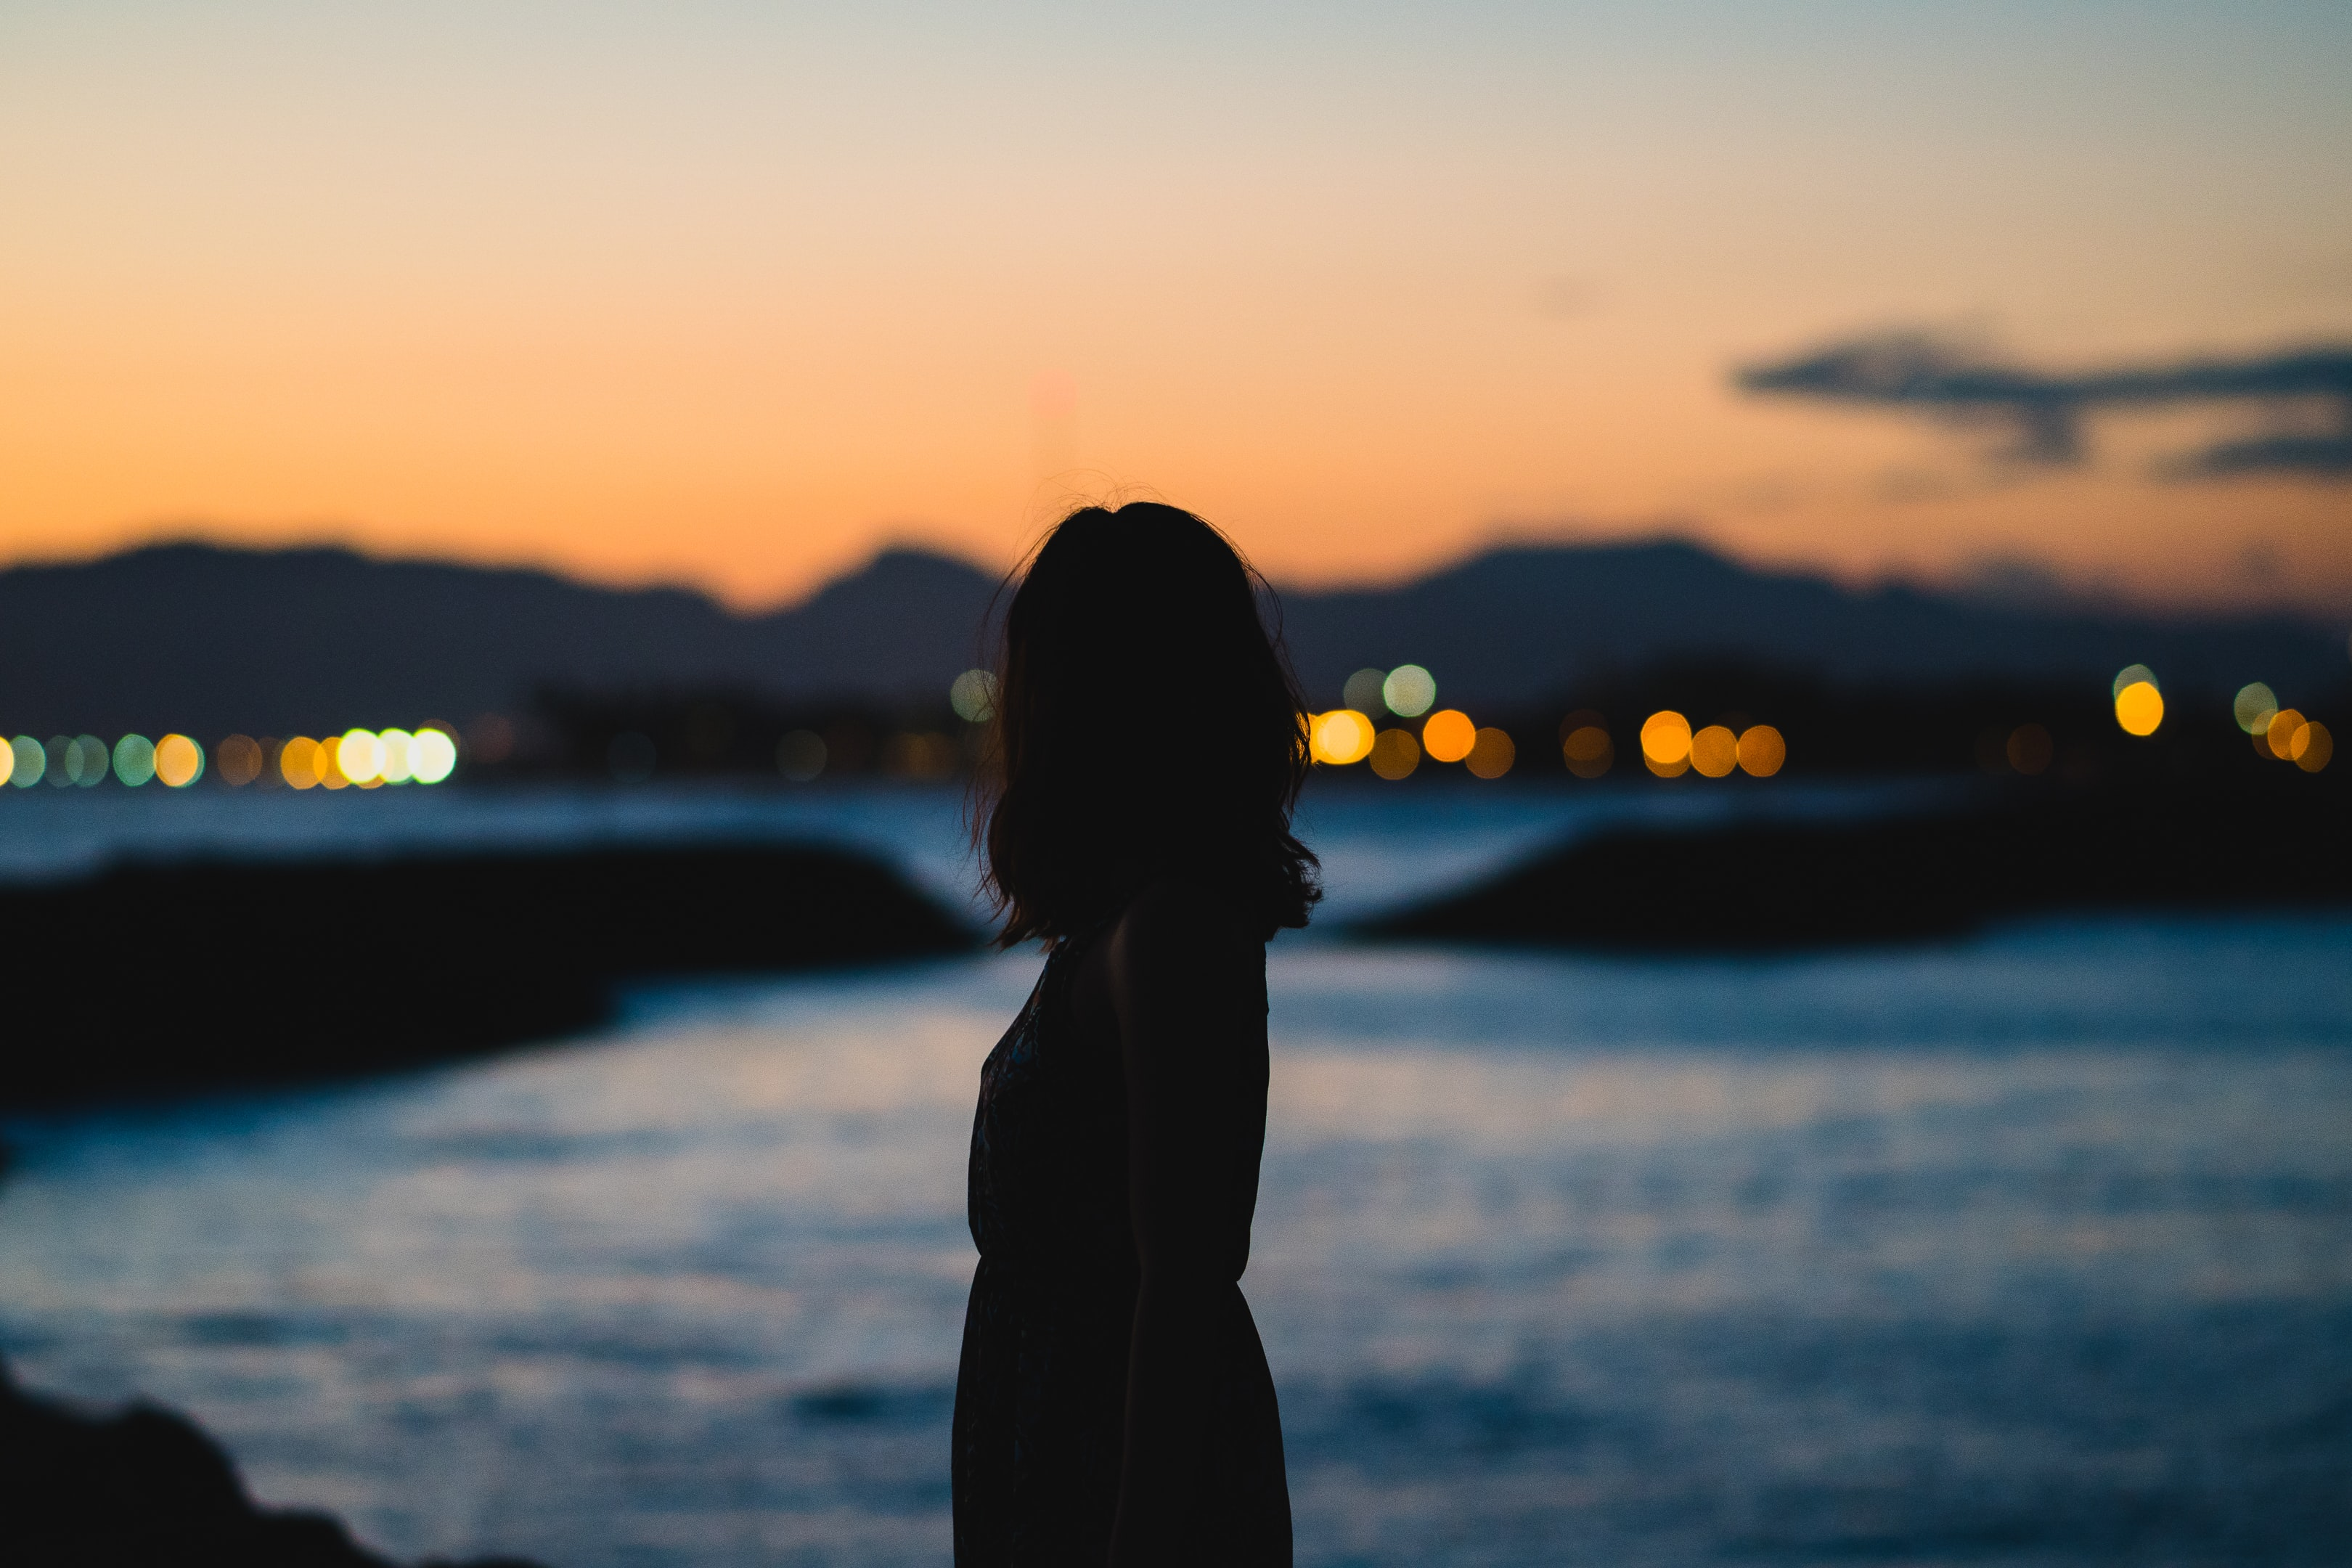 silhouette of woman standing beside body of water